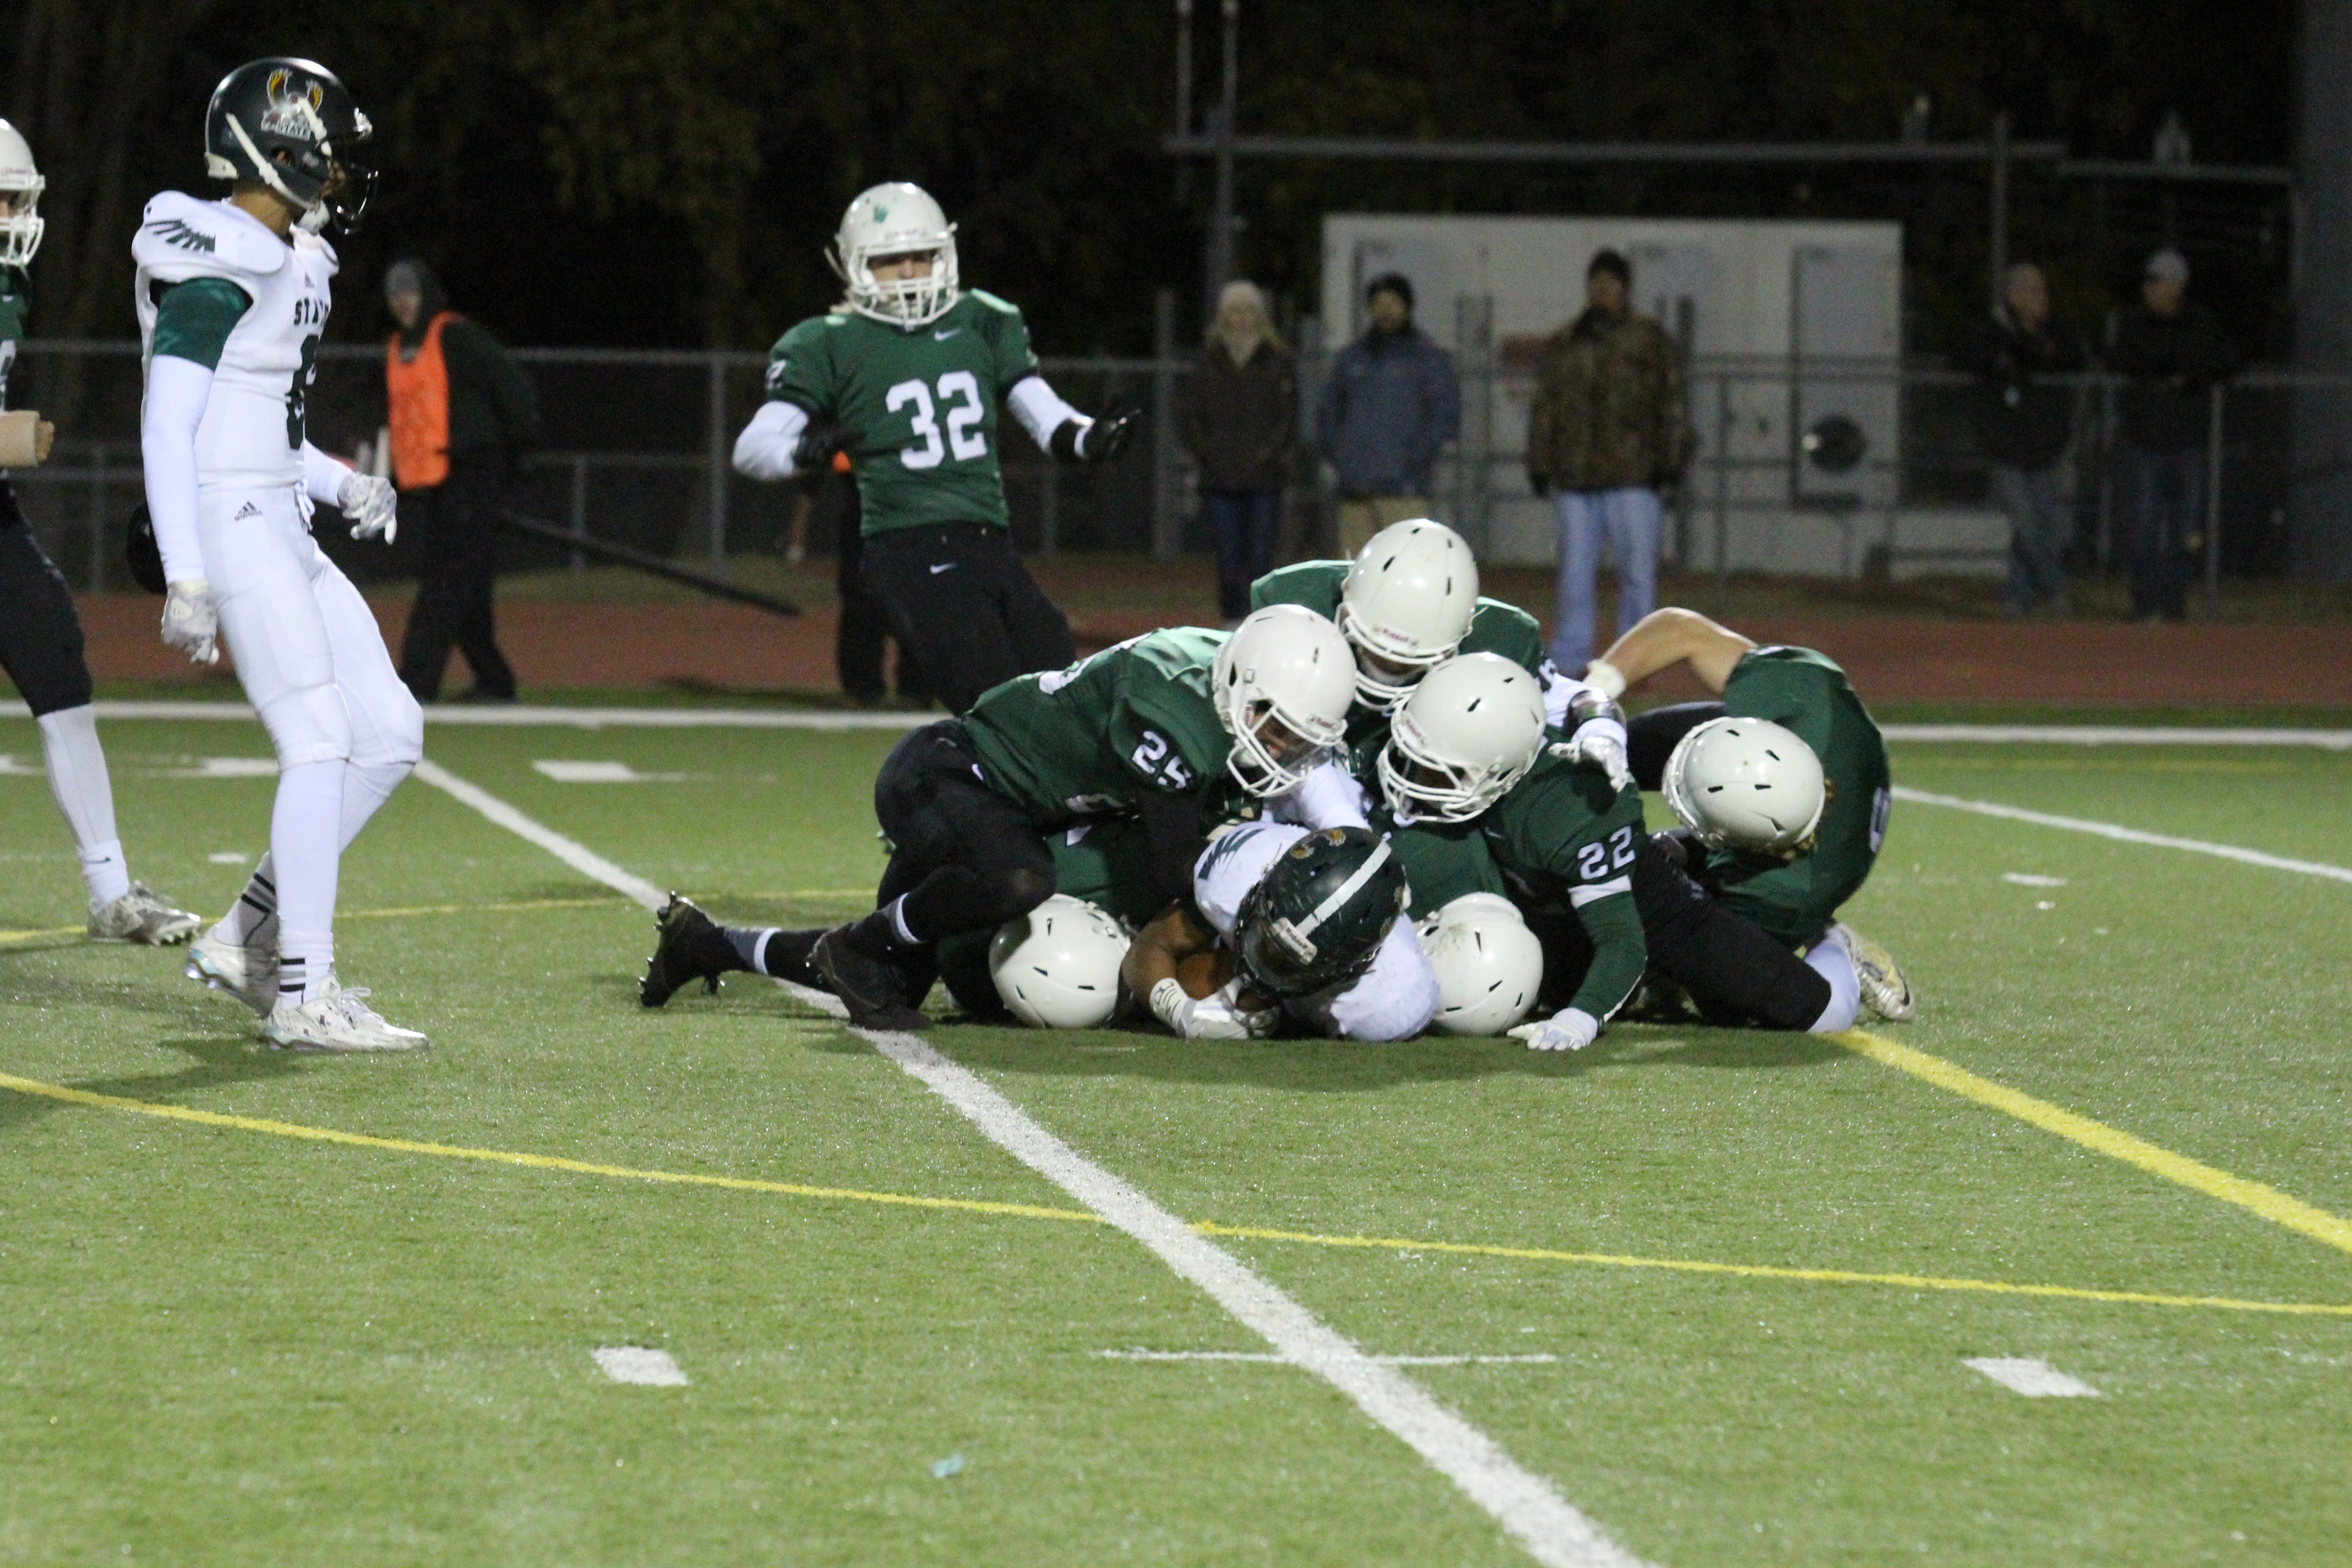 Derby's defense sacks Lawrence free state QB in their sub-state game.